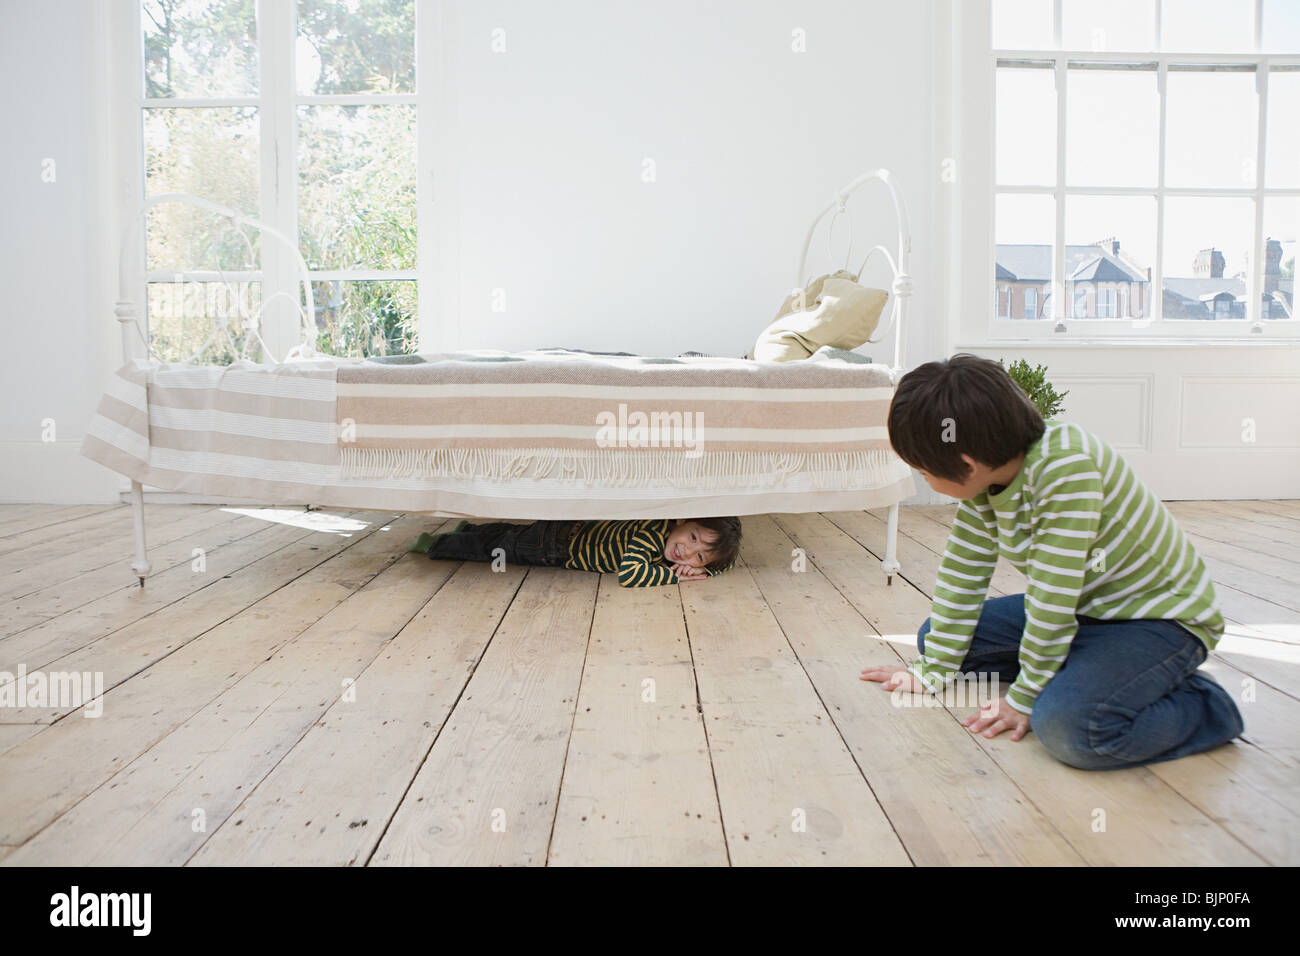 Boys playing hide and seek - Stock Image